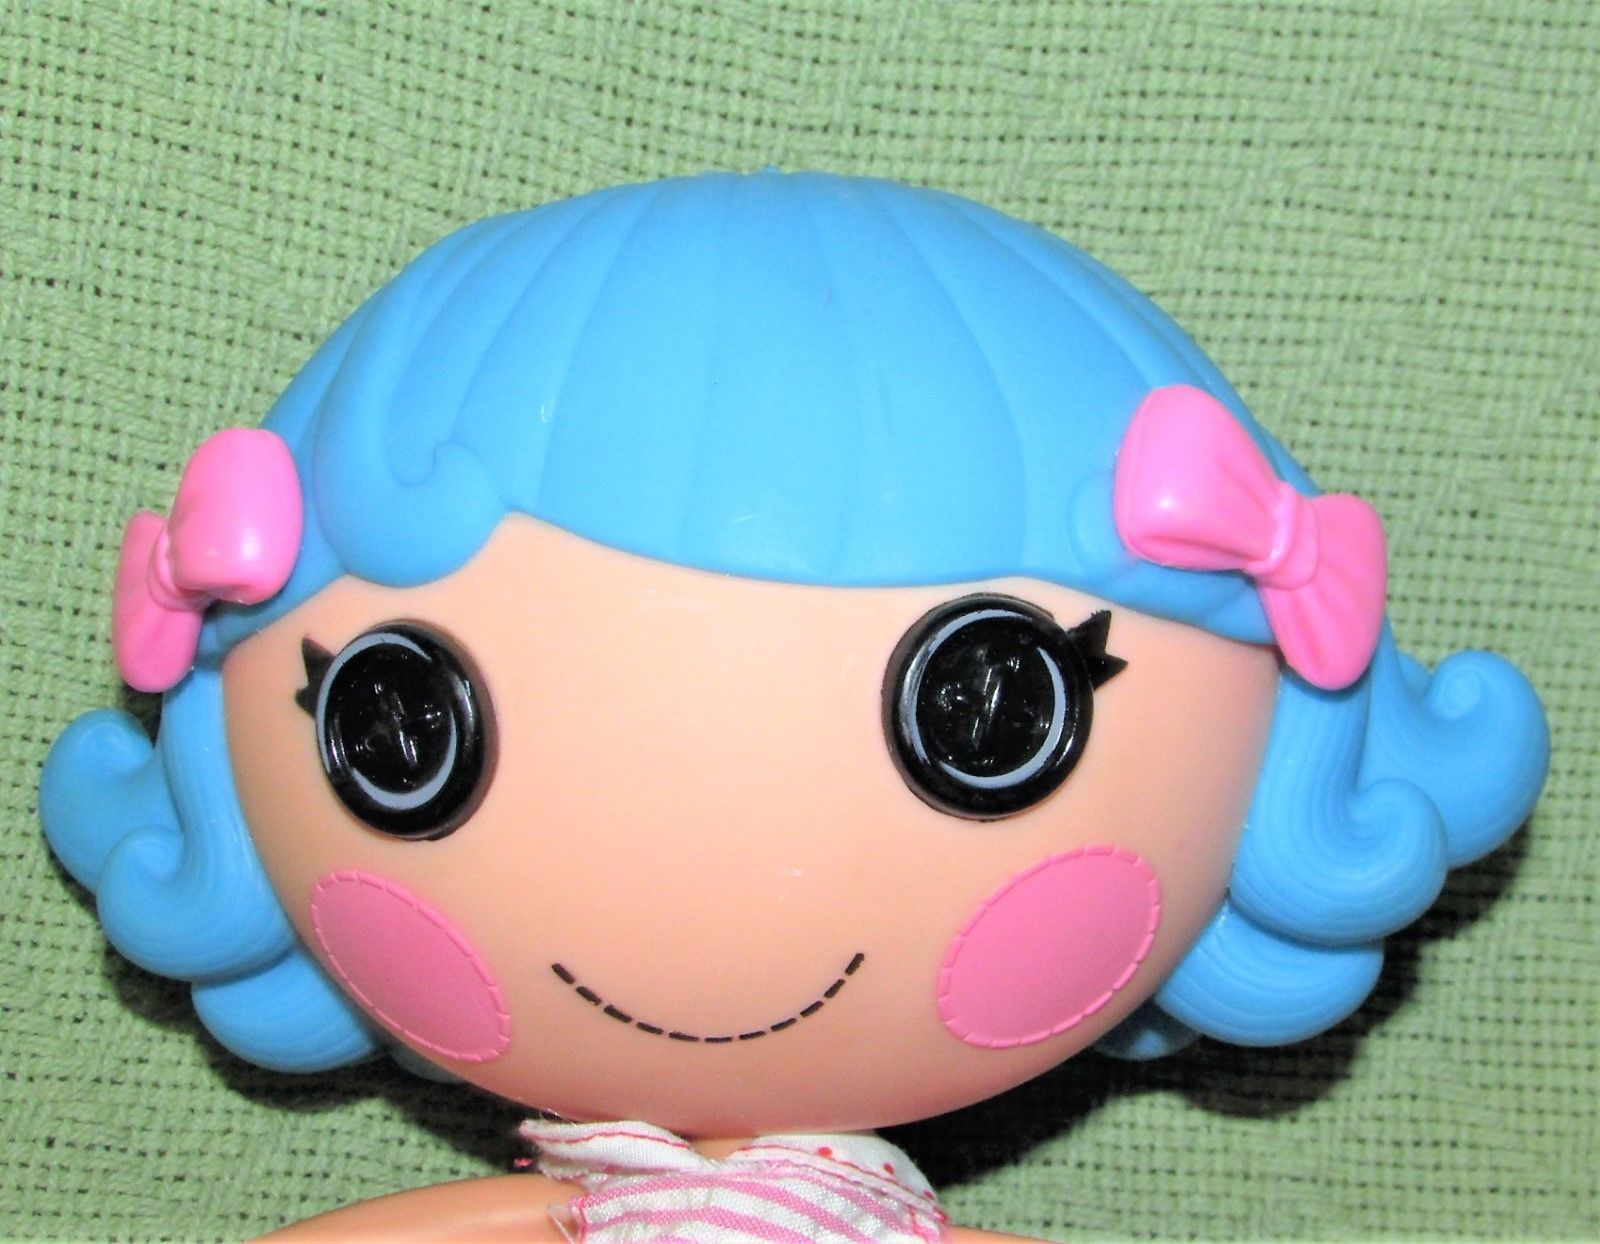 Lalaloopsy Doll Lot Full Size Blue Hair Plush Yellow Pink Pony Princess Toy